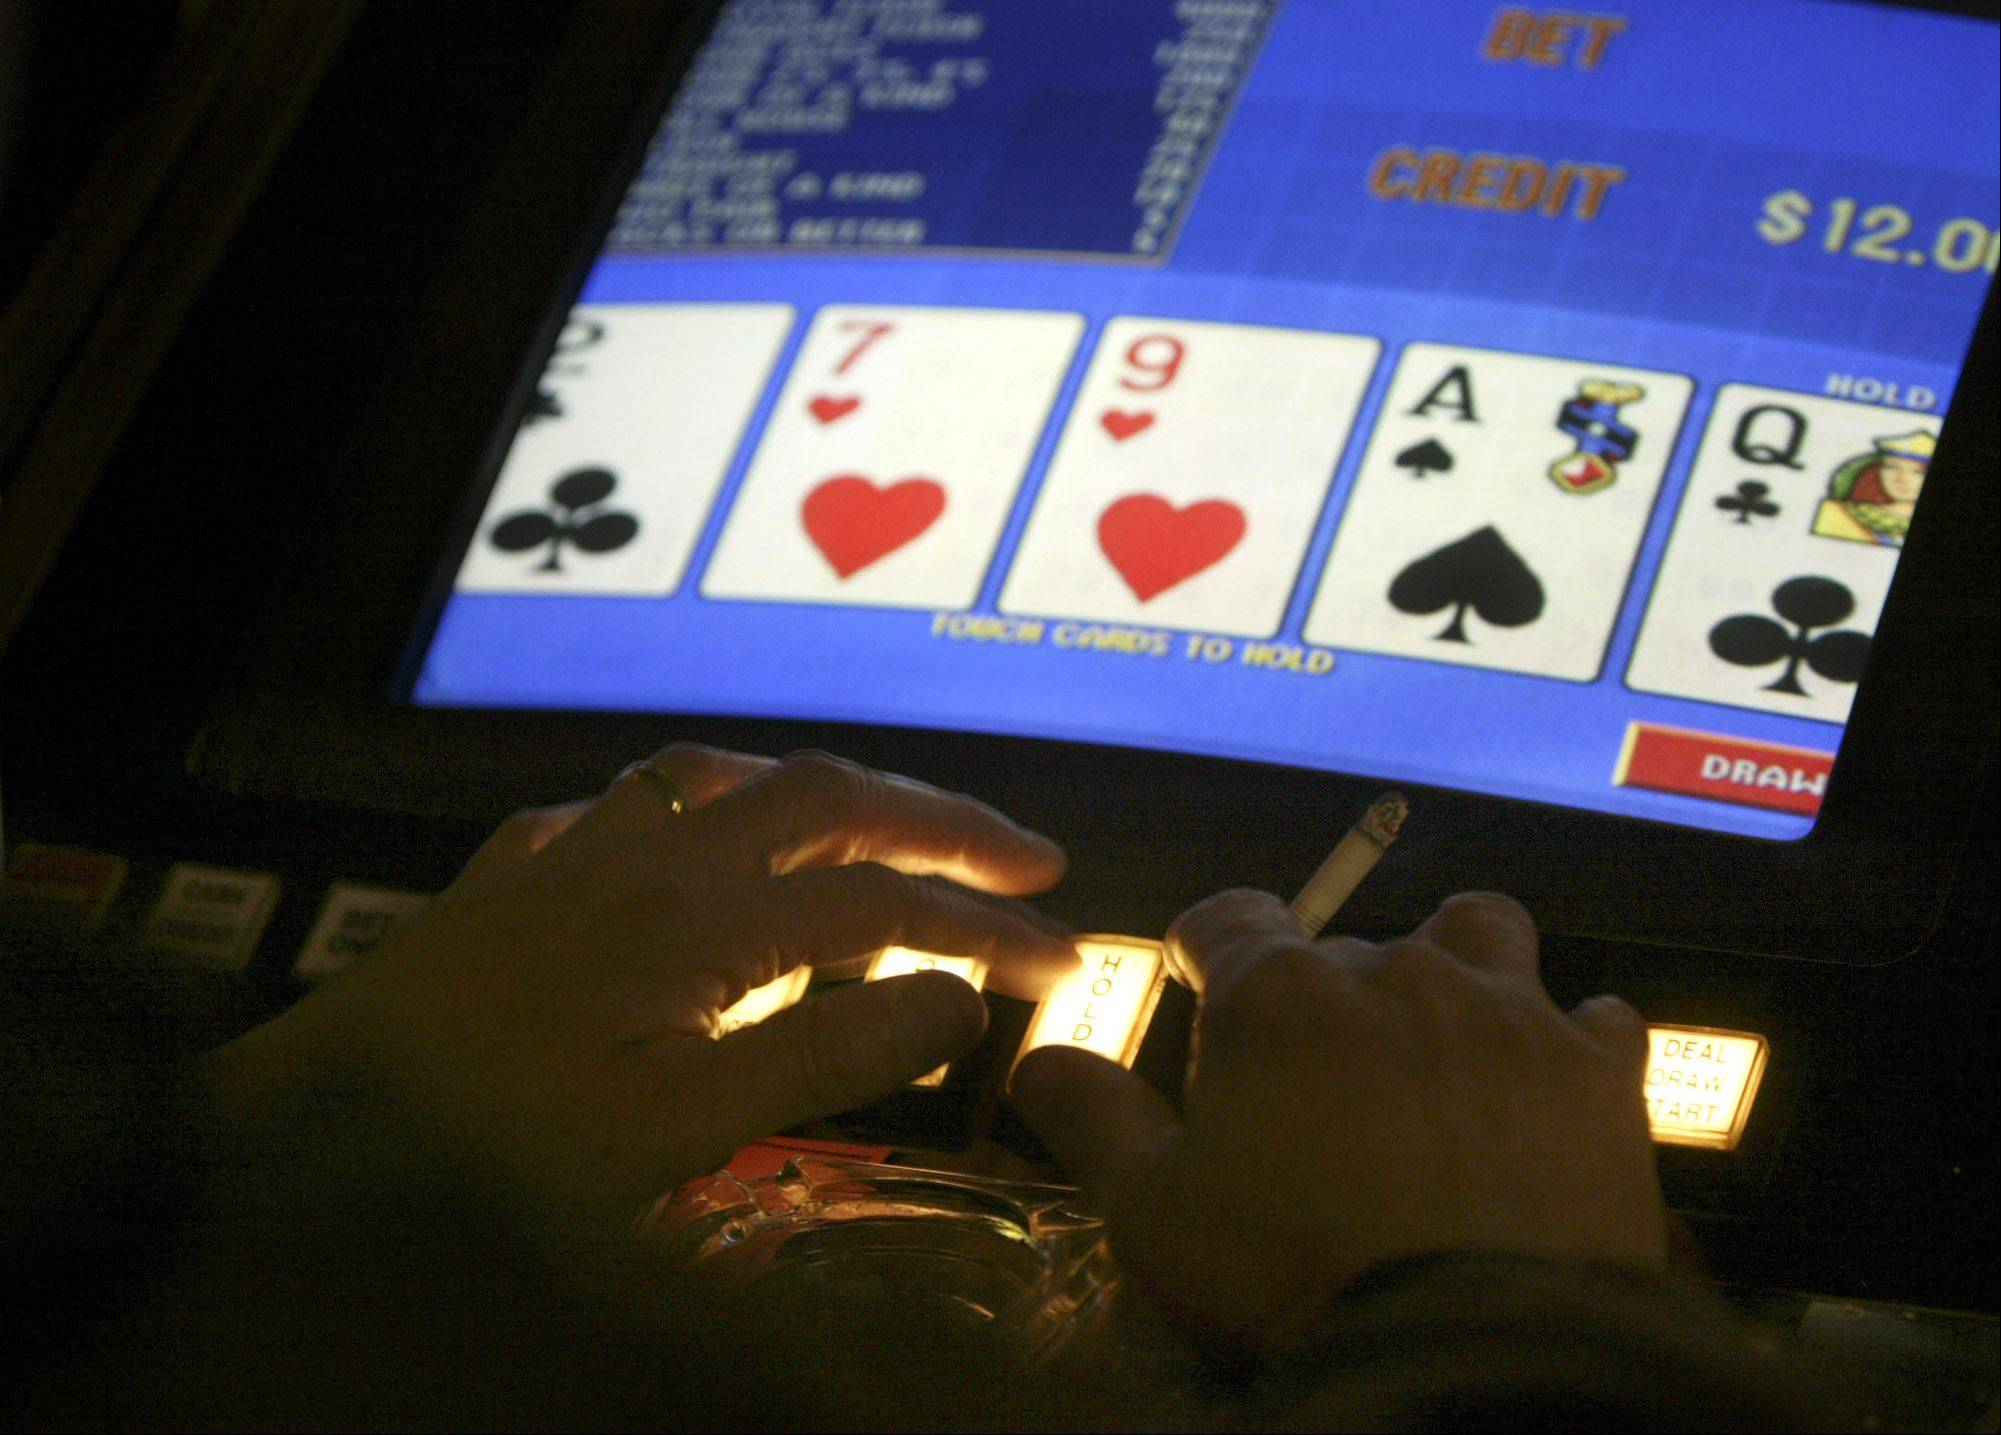 Round Lake has joined a growing list of suburbs to approve video gambling at bars, restaurants, truck stops and other eligible establishments in the community. Village trustees recently voted 6-0 to reverse a previous village board's ordinance that had banned video gaming in town.